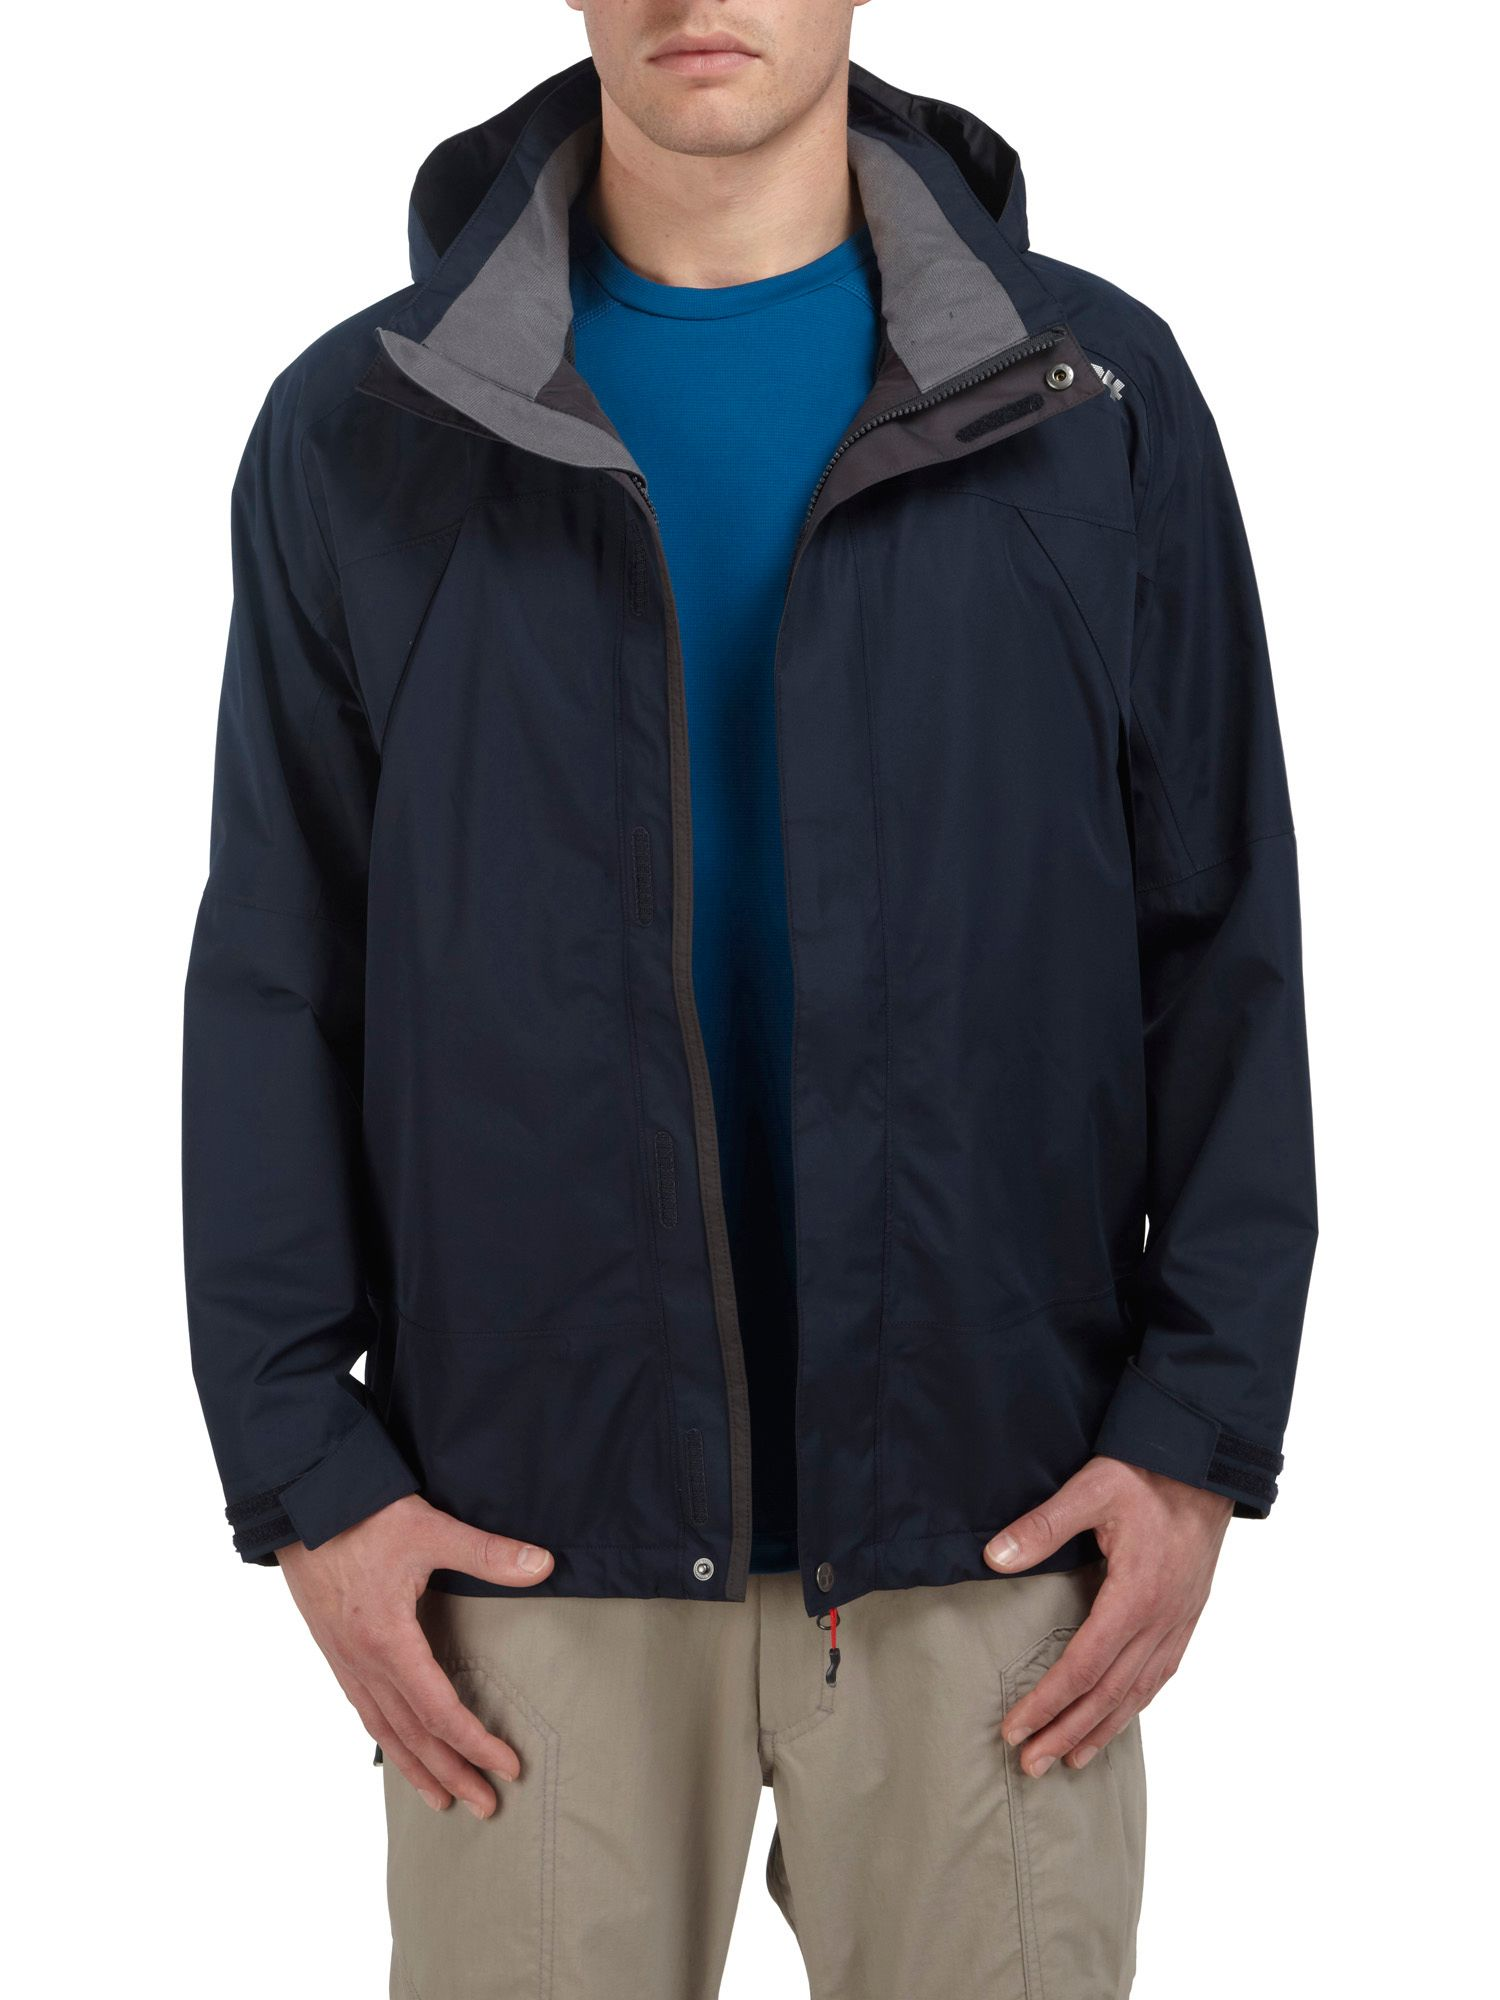 Dylon II cocona hooded jacket